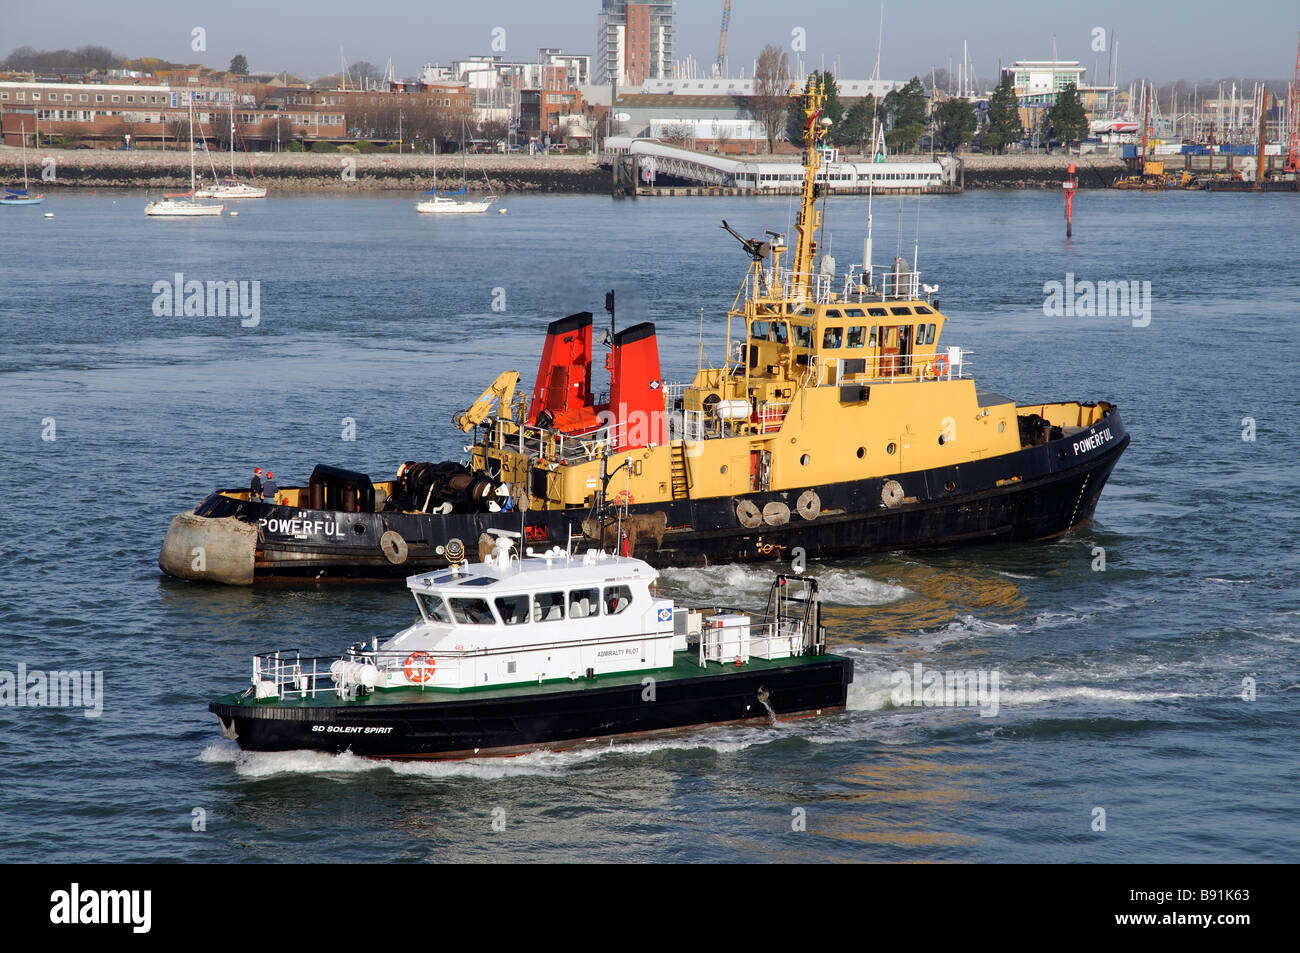 Serco Denholm SD operated vessels on Portsmouth Harbour southern England UK Tug Powerful and SD Solen Spirit an - Stock Image